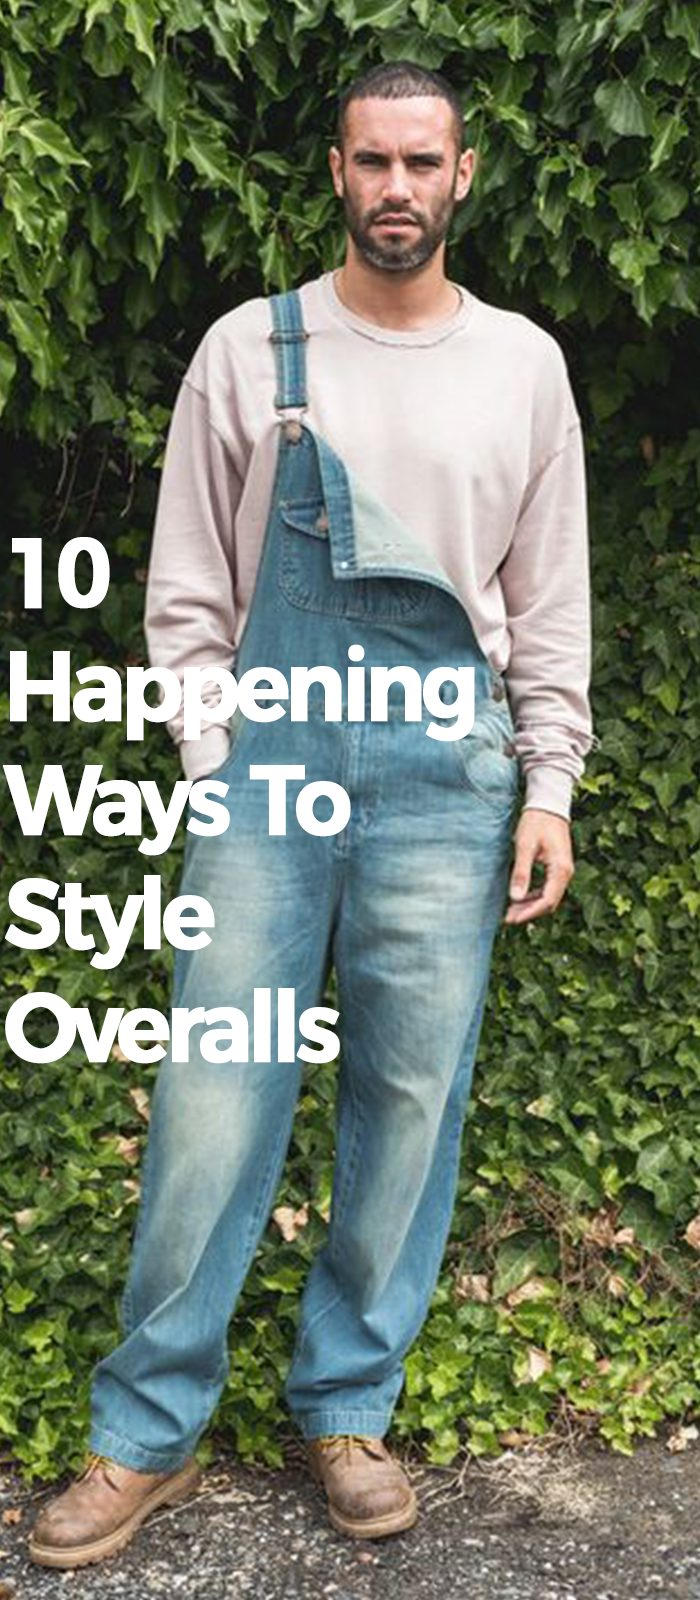 10 Happening Ways To Style Overalls.